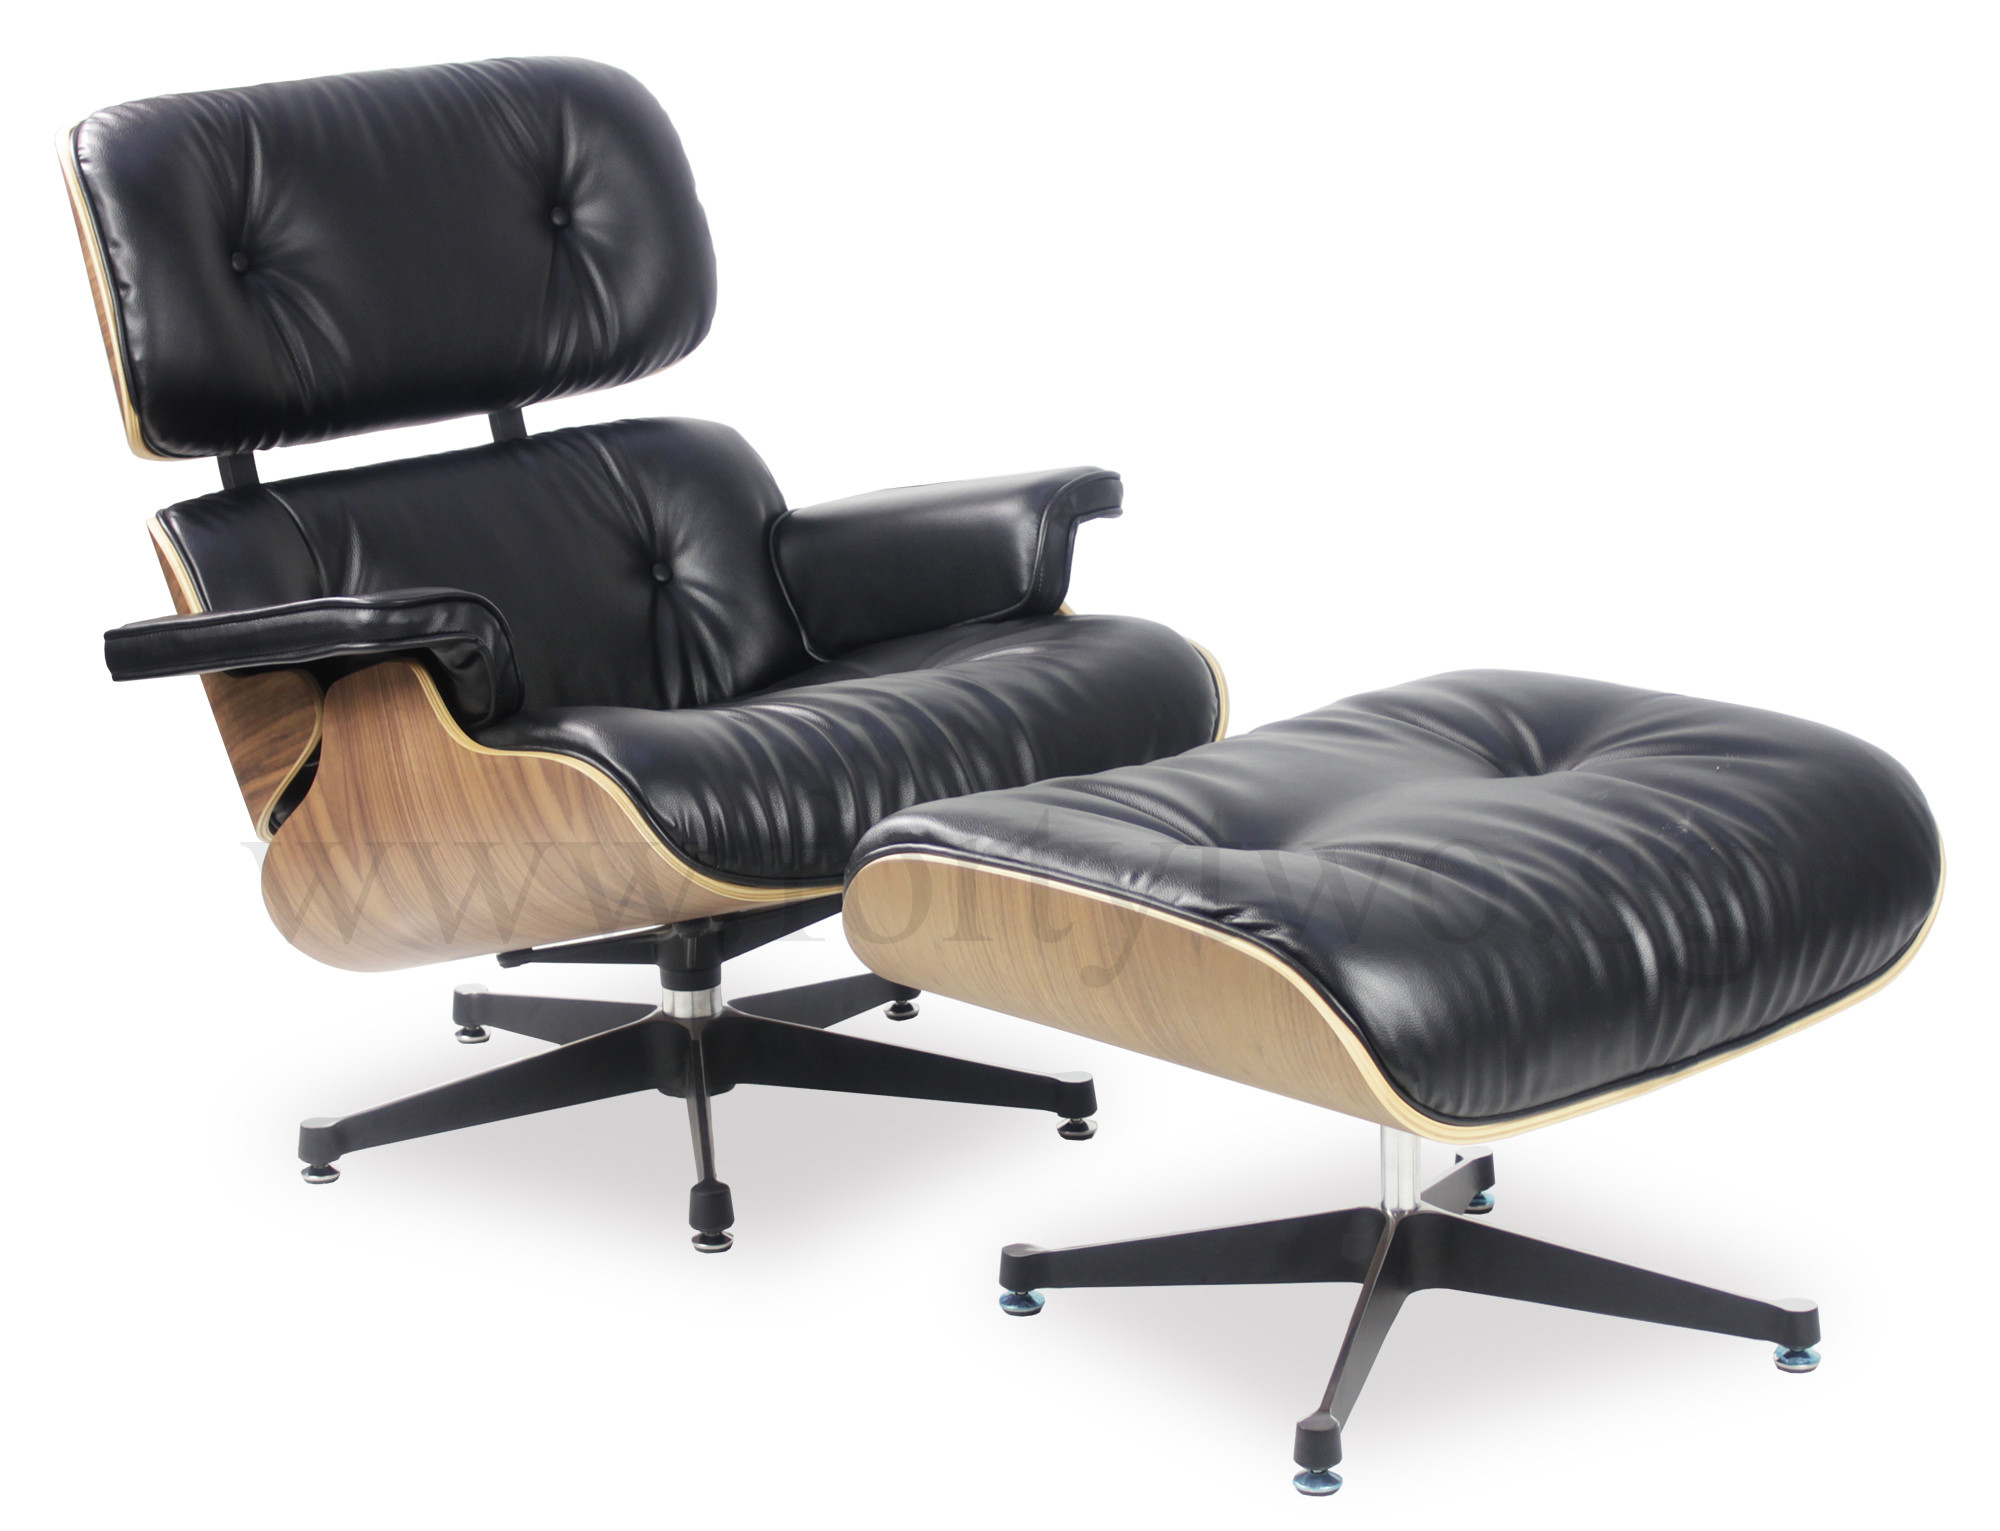 designer replica eames lounge chair black furniture. Black Bedroom Furniture Sets. Home Design Ideas